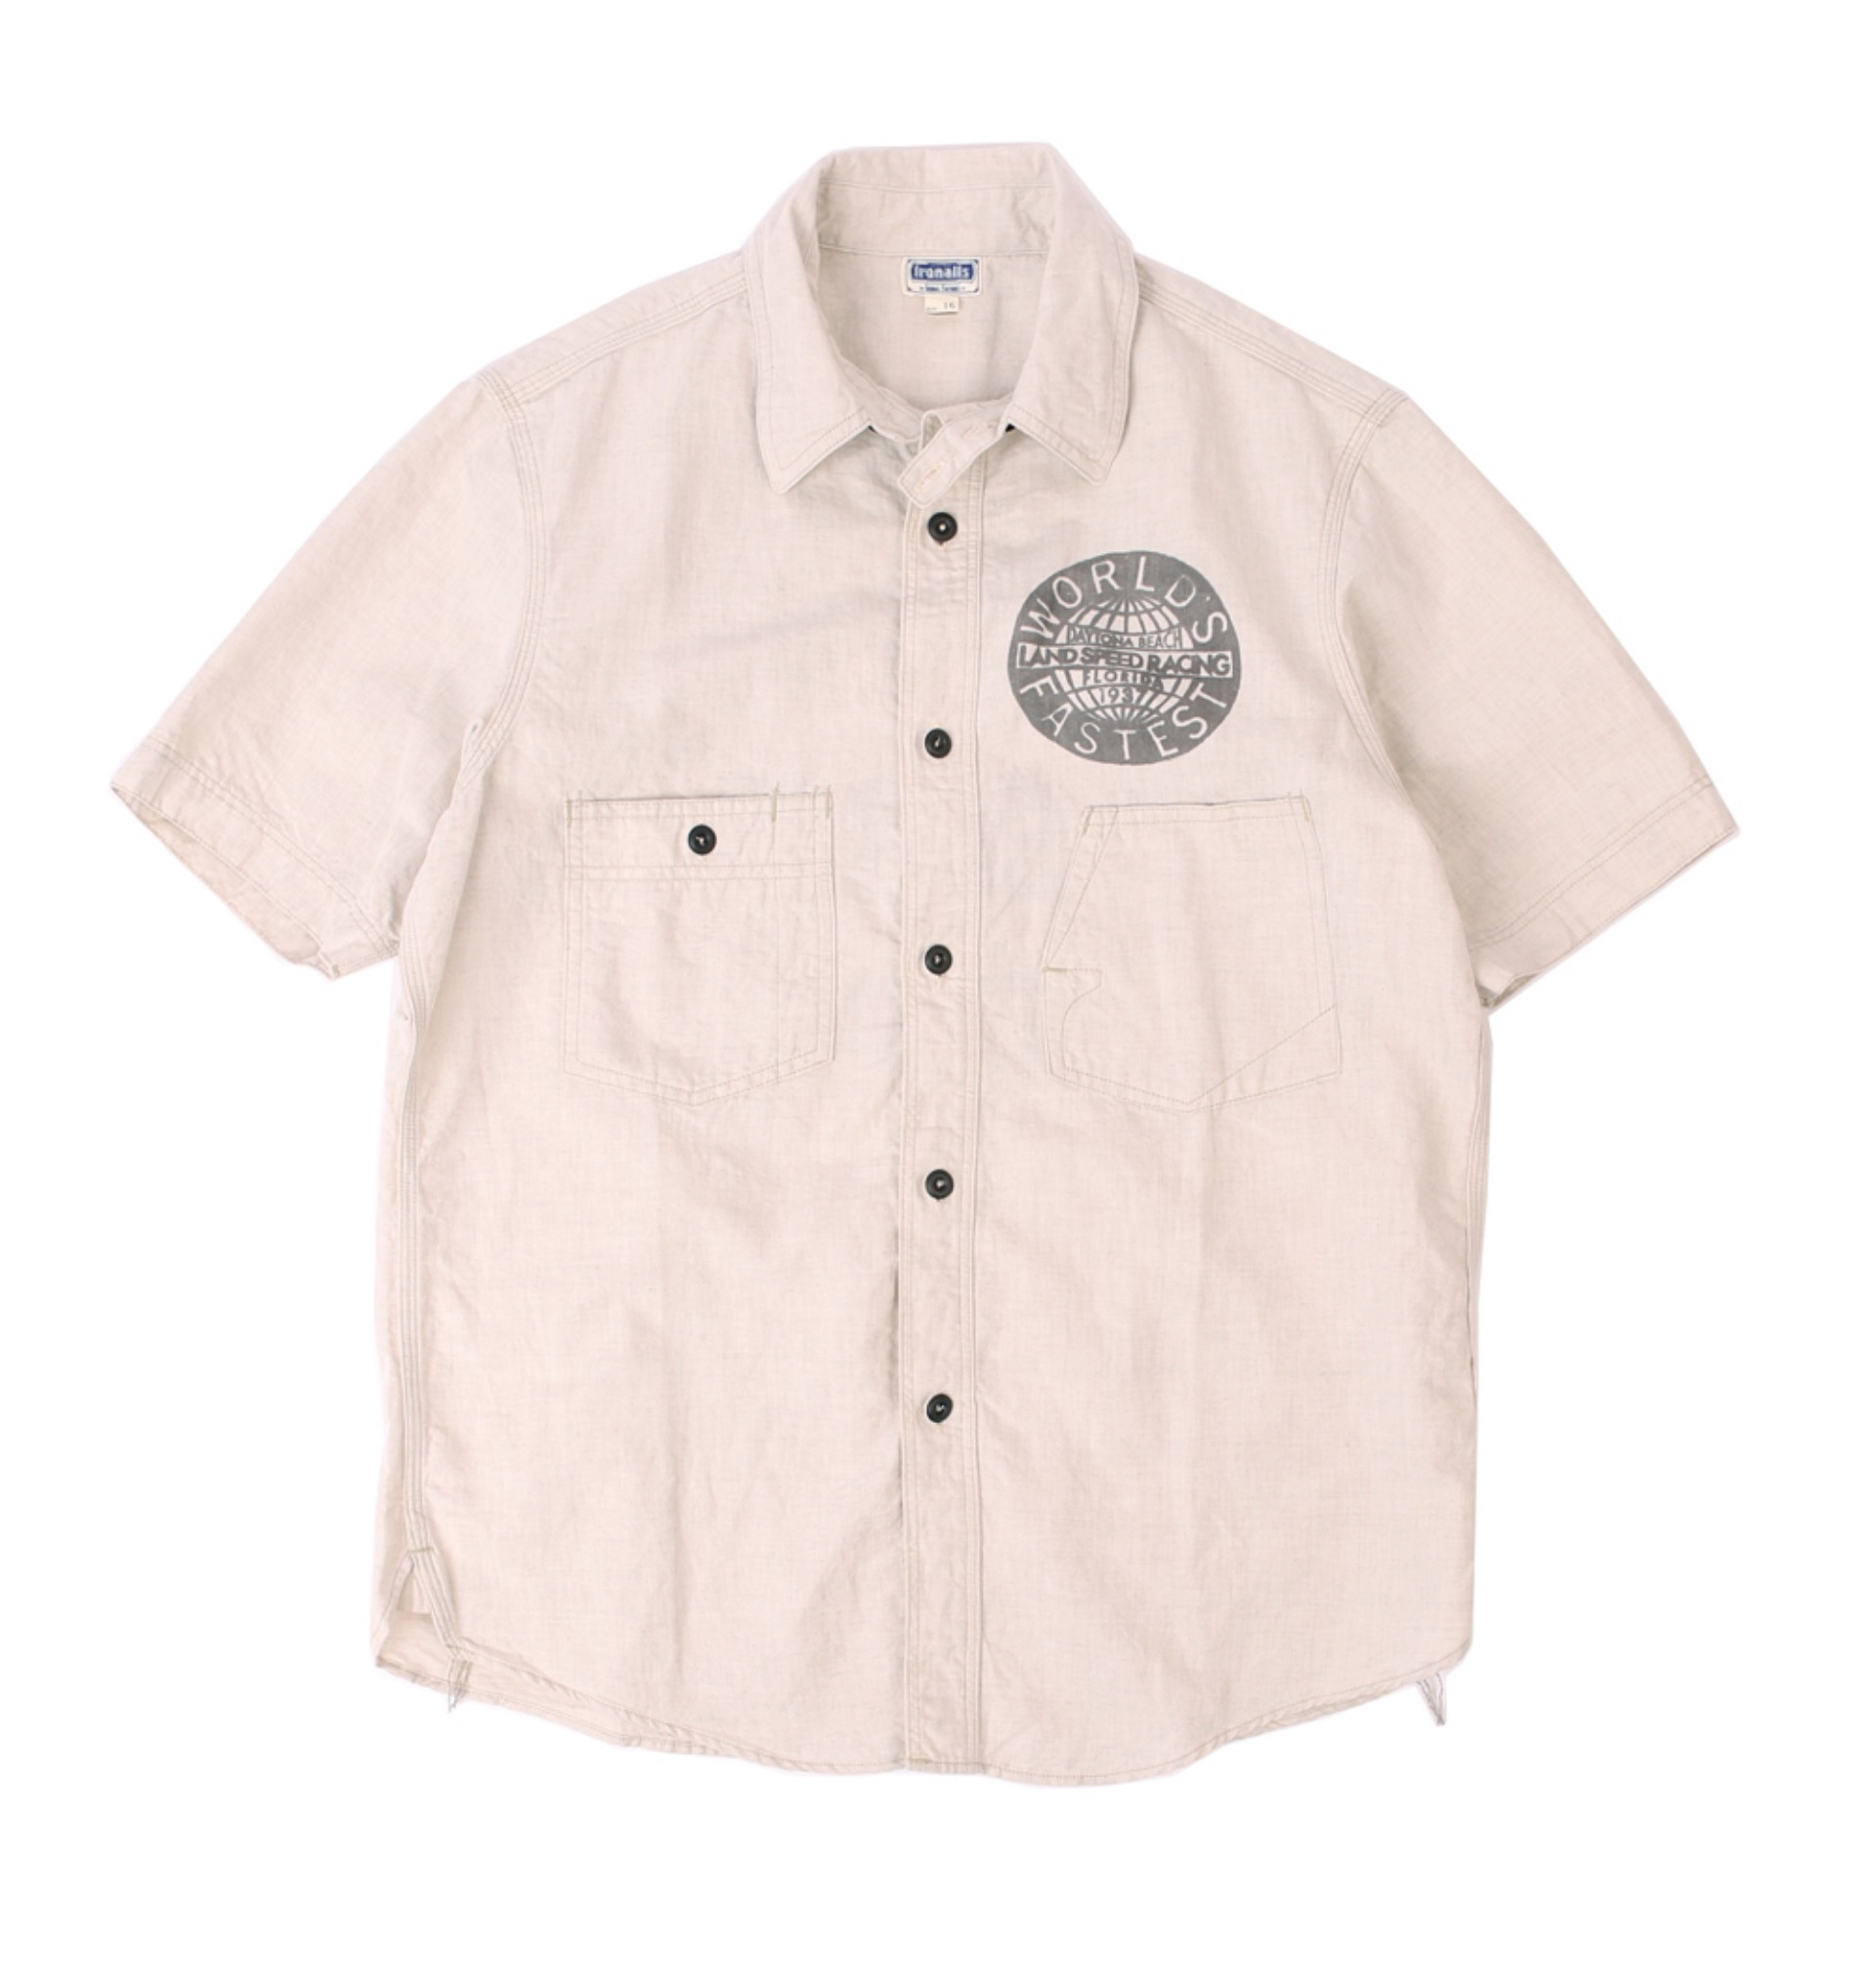 "[THE IRONALL FACTORIES CO. ]Work Short Sleeve Shirts""1937 DAYTONA RECORD BREAKER""(Cream)"